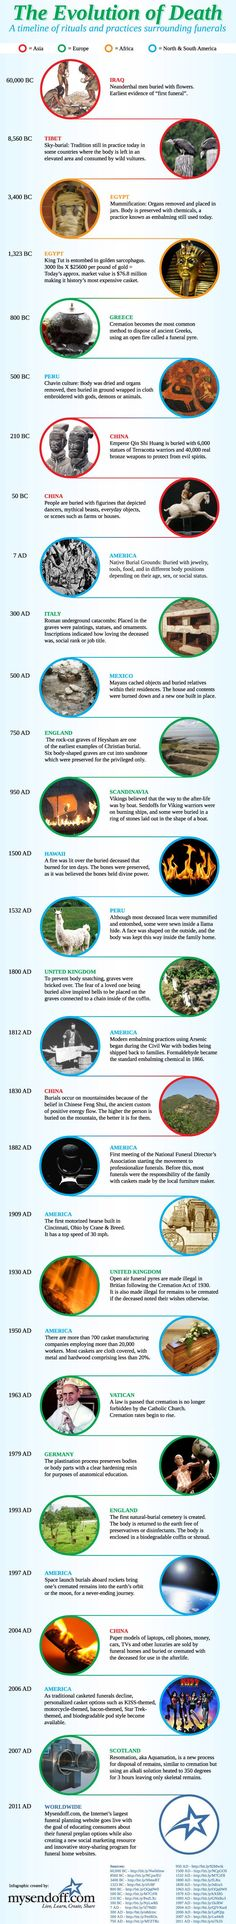 evolution of funerals -- quirky yet informative!